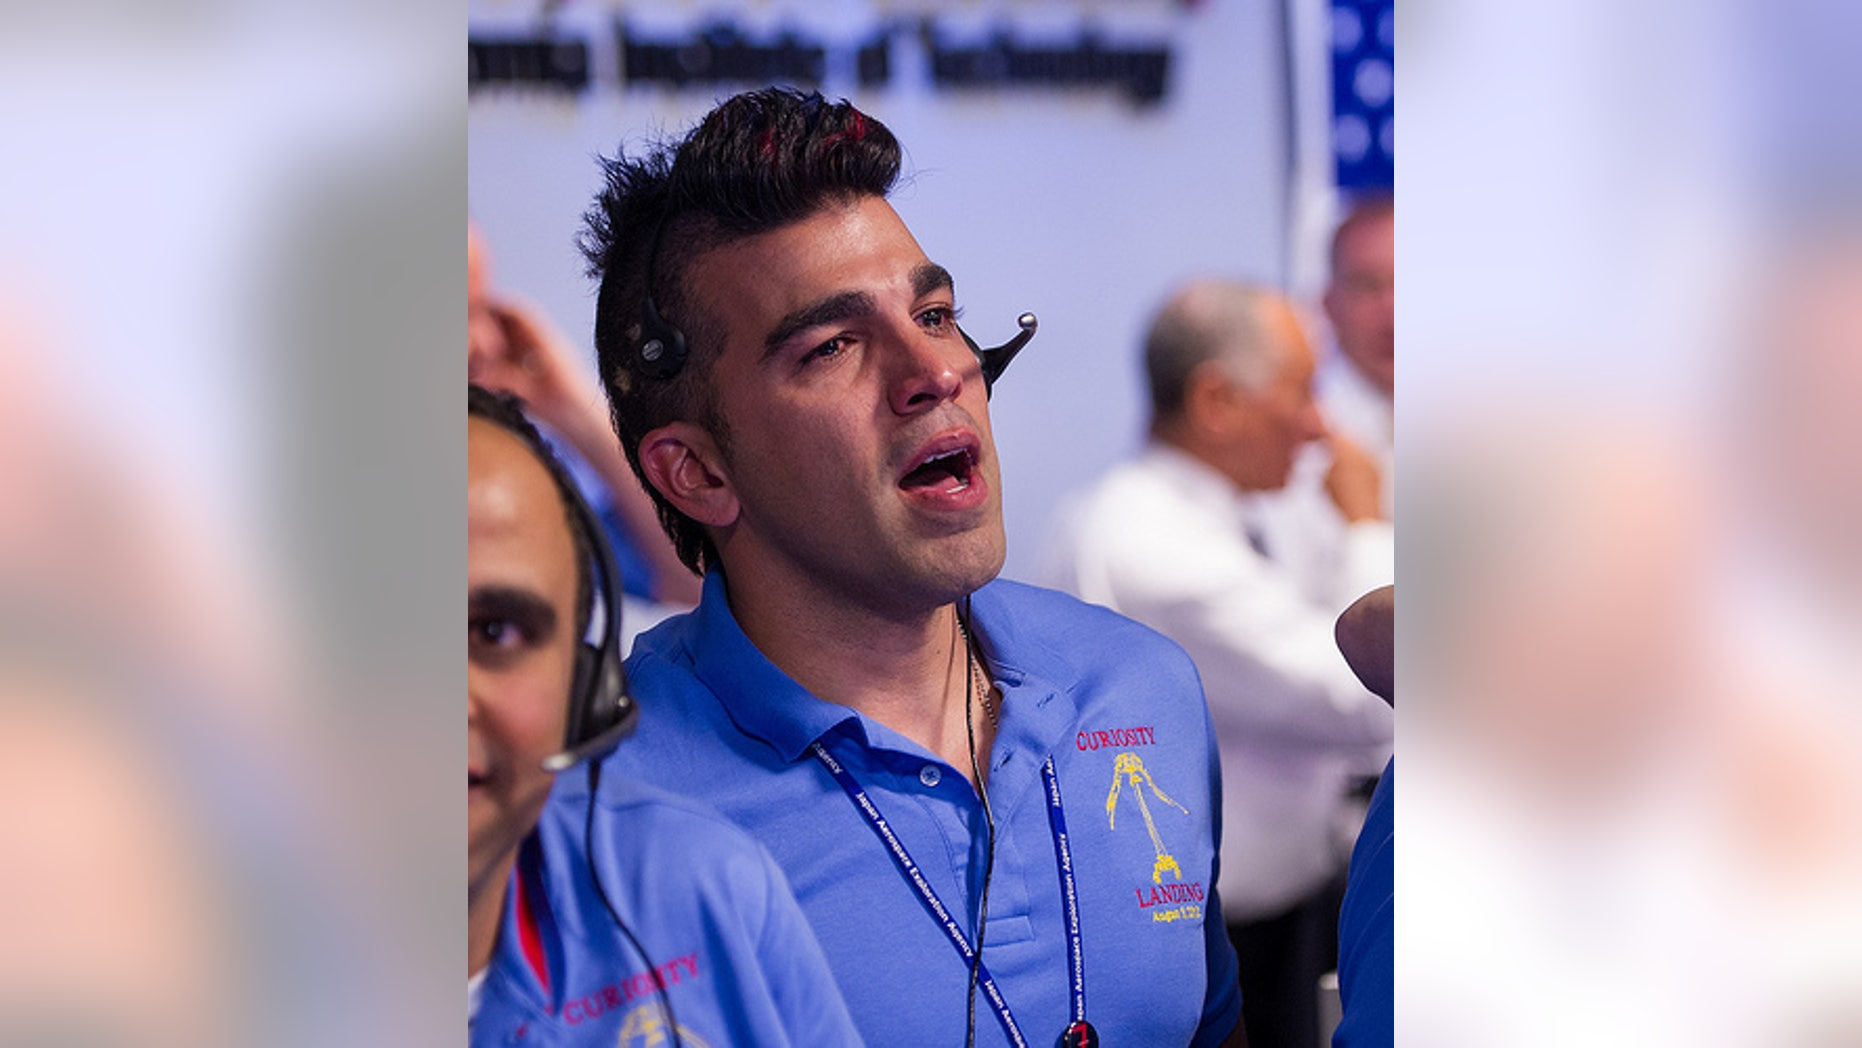 Mars Science Laboratory systems engineer Bobak Ferdowsi at the Jet Propulsion Laboratory in Pasadena, Calif., is seen reacting after the Curiosity rover successfully landed on Mars on Aug. 5, 2012 (PDT; Aug. 6 EDT).